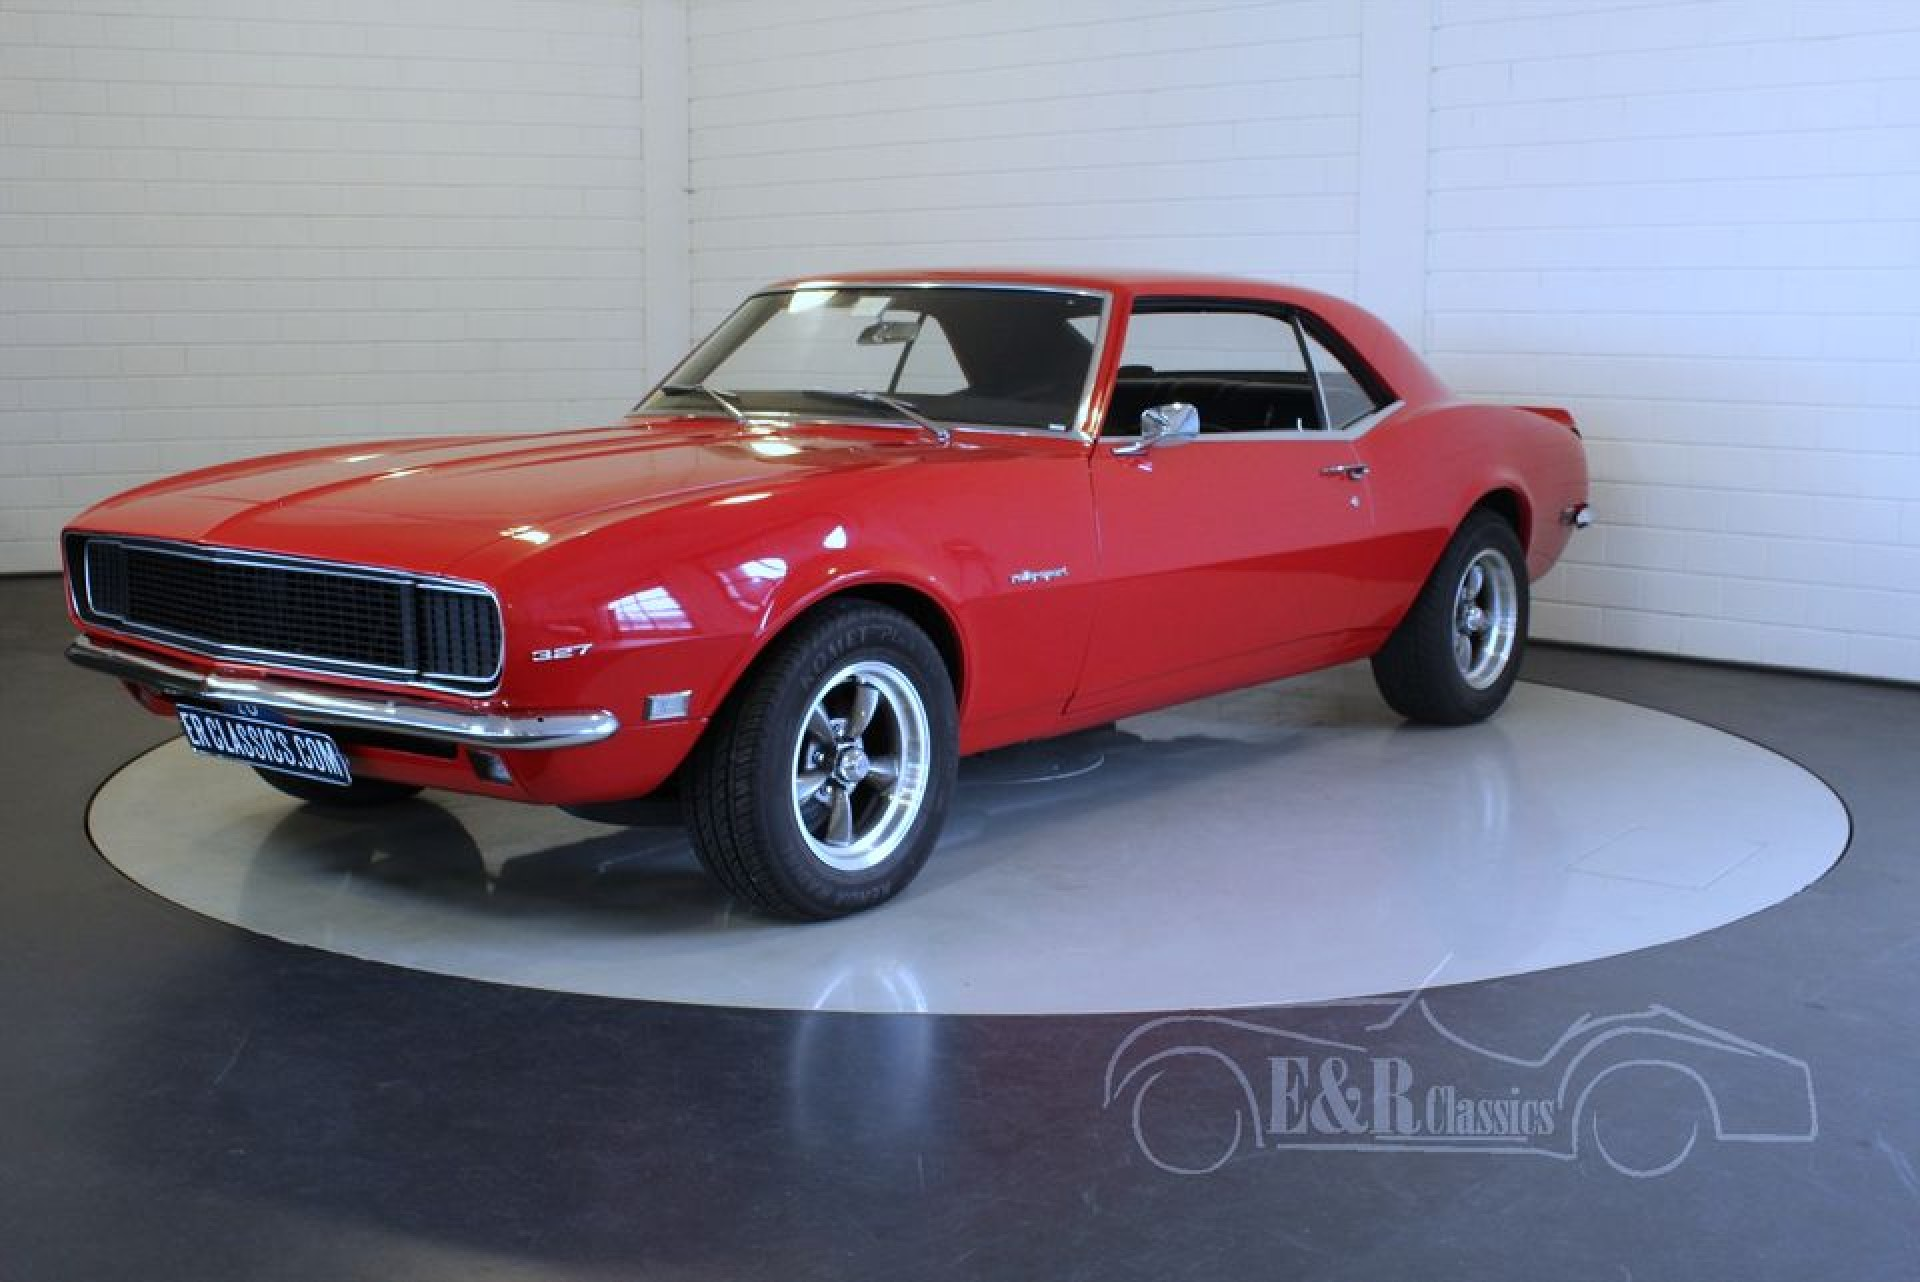 chevrolet camaro rs 1968 vendre erclassics. Black Bedroom Furniture Sets. Home Design Ideas